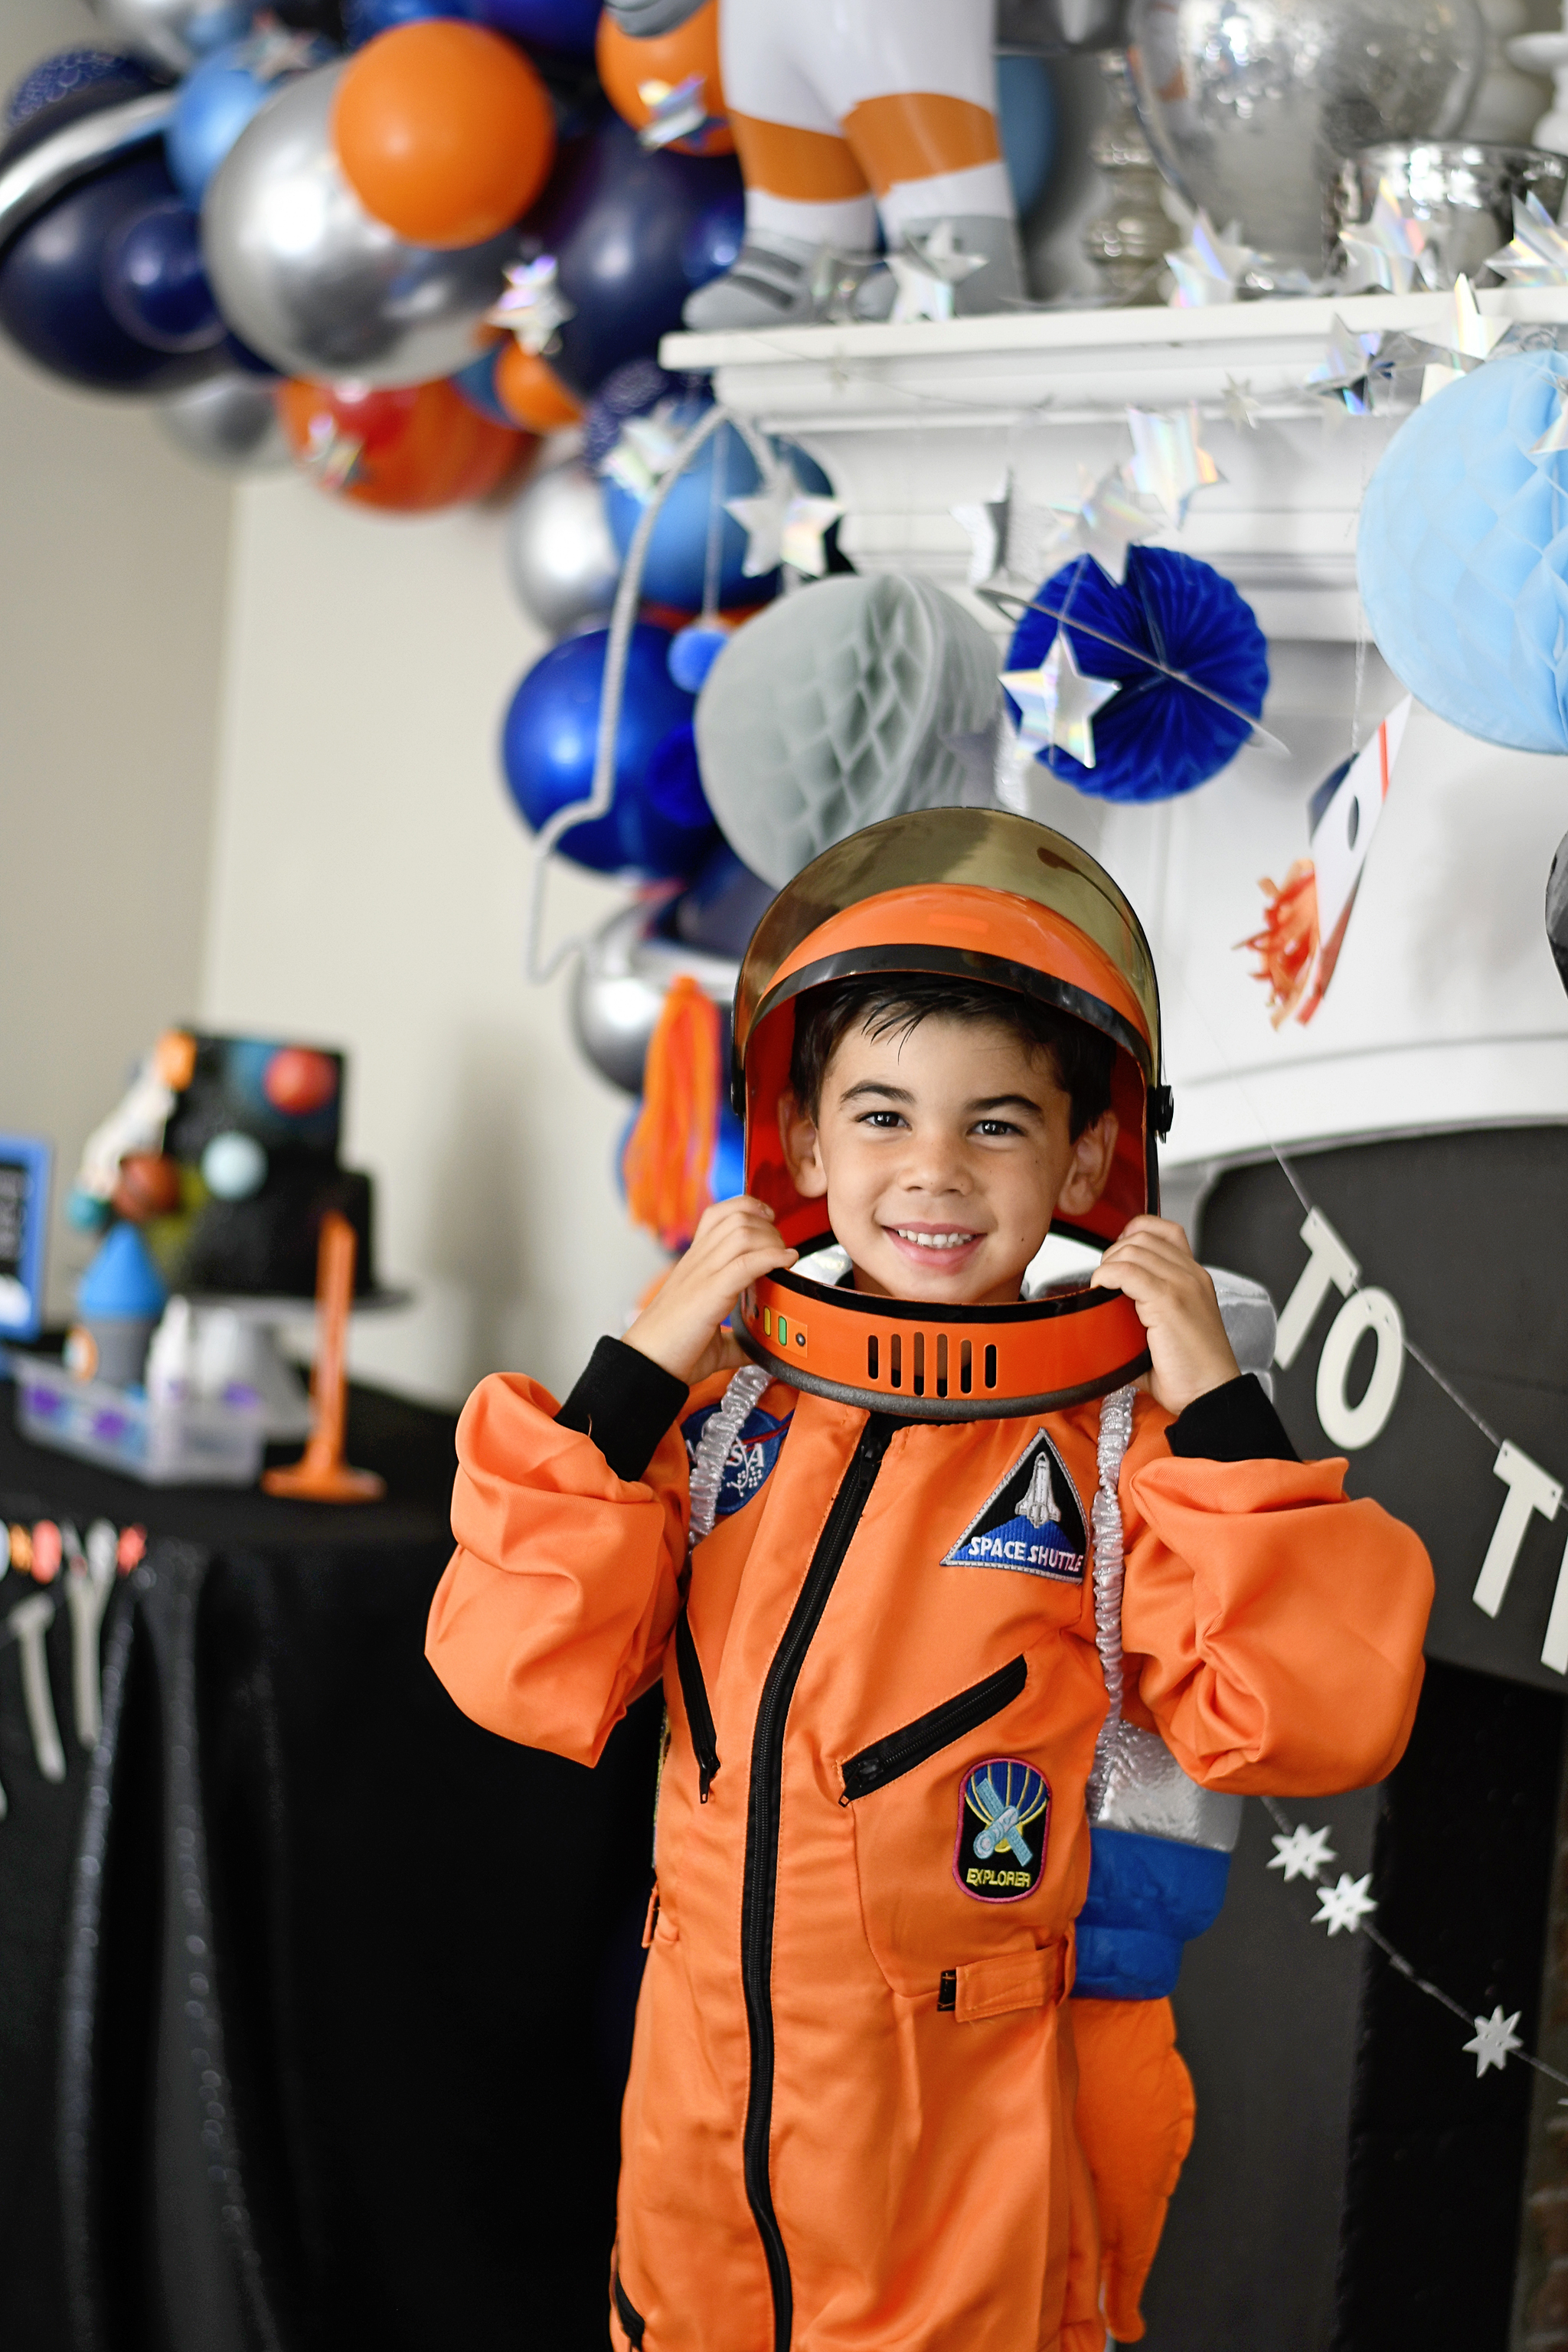 Throw an Amazing Outer Space Themed Birthday Party!